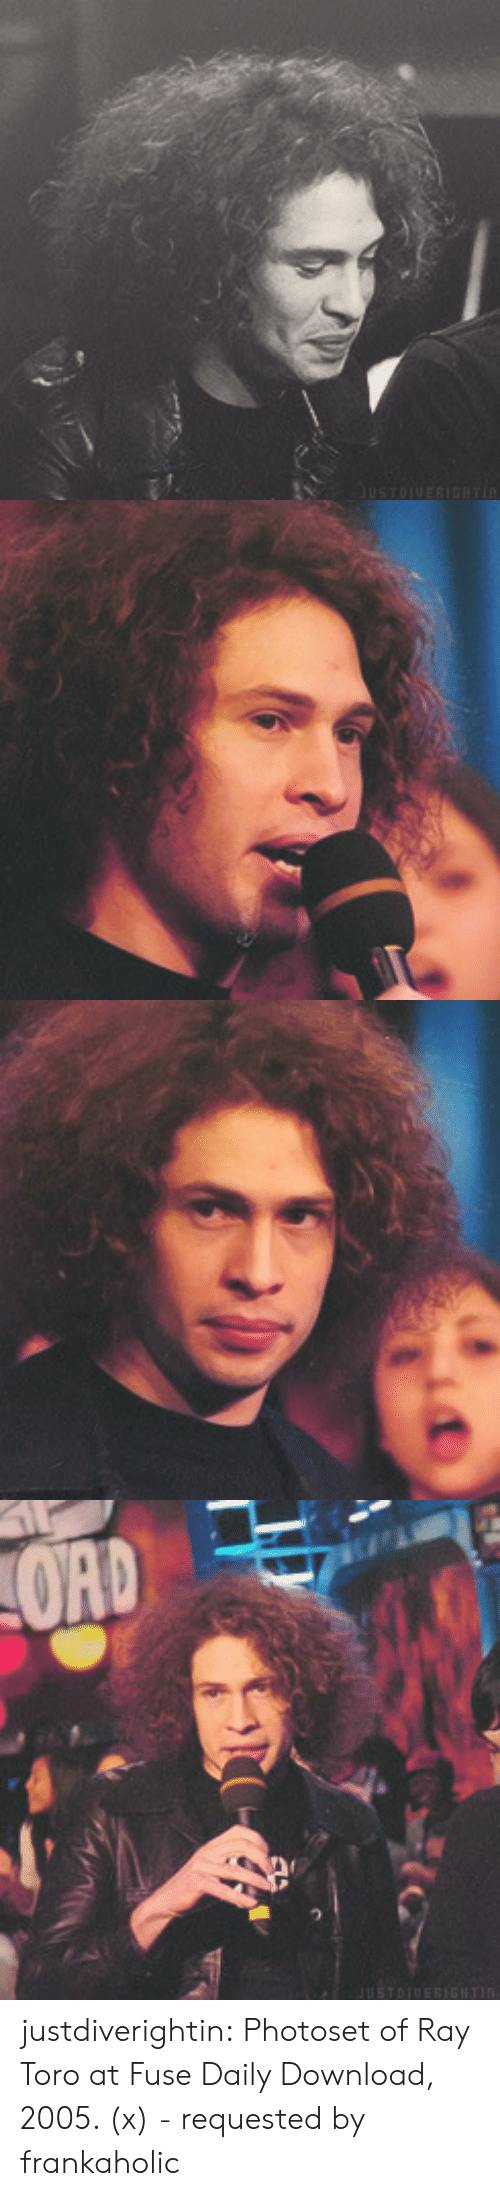 toro: justdiverightin: Photoset of Ray Toro at Fuse Daily Download, 2005. (x) -requested by frankaholic